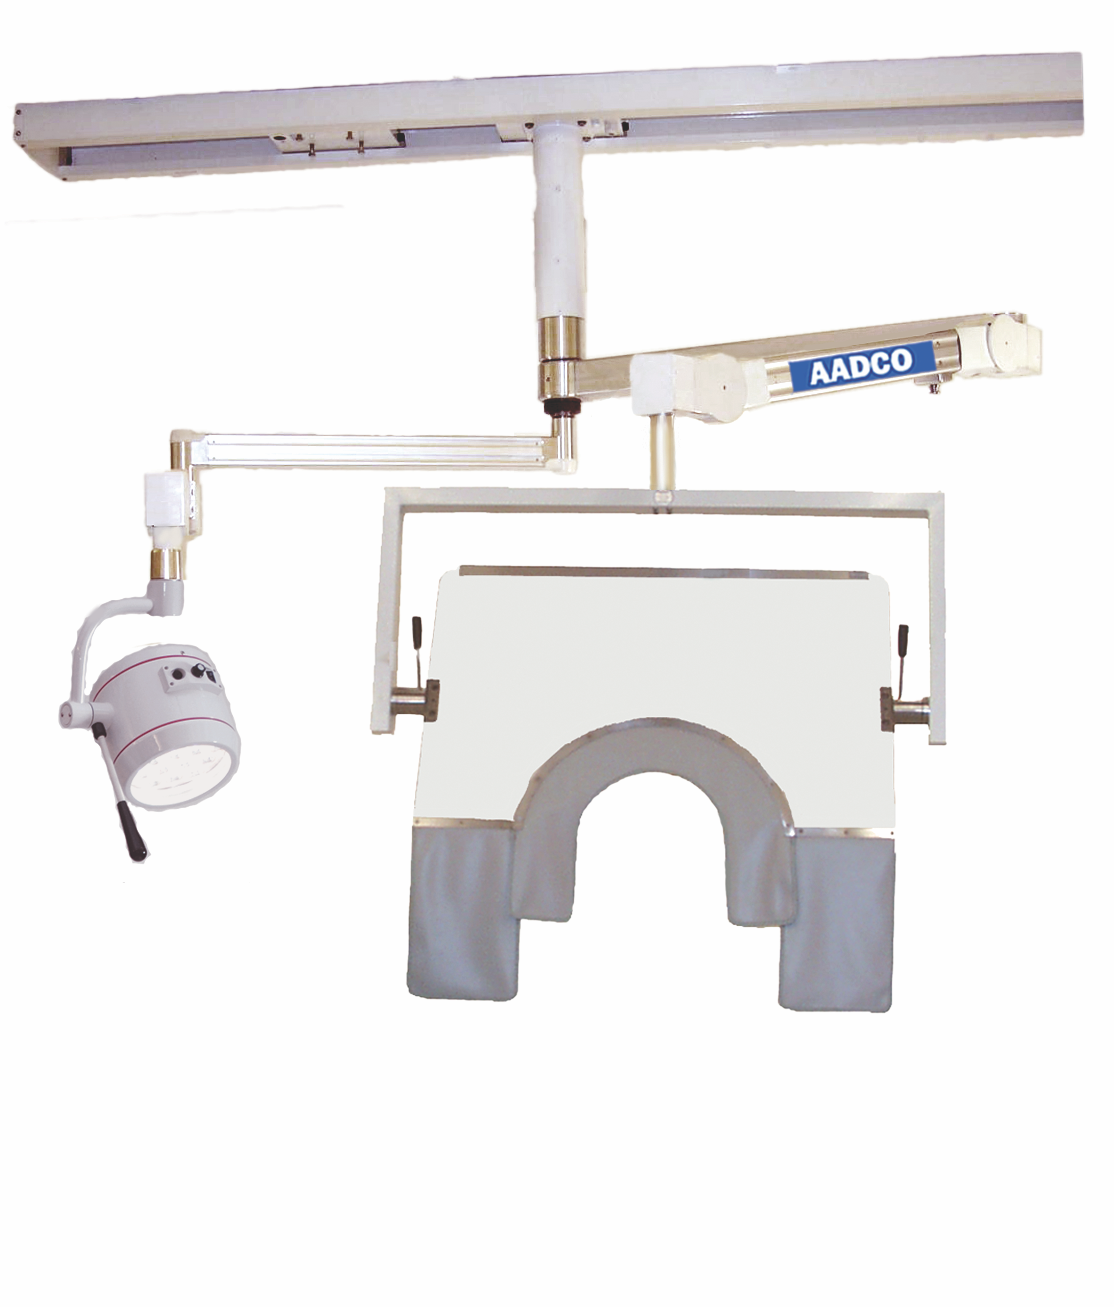 Hercules® Overhead Suspension Systems